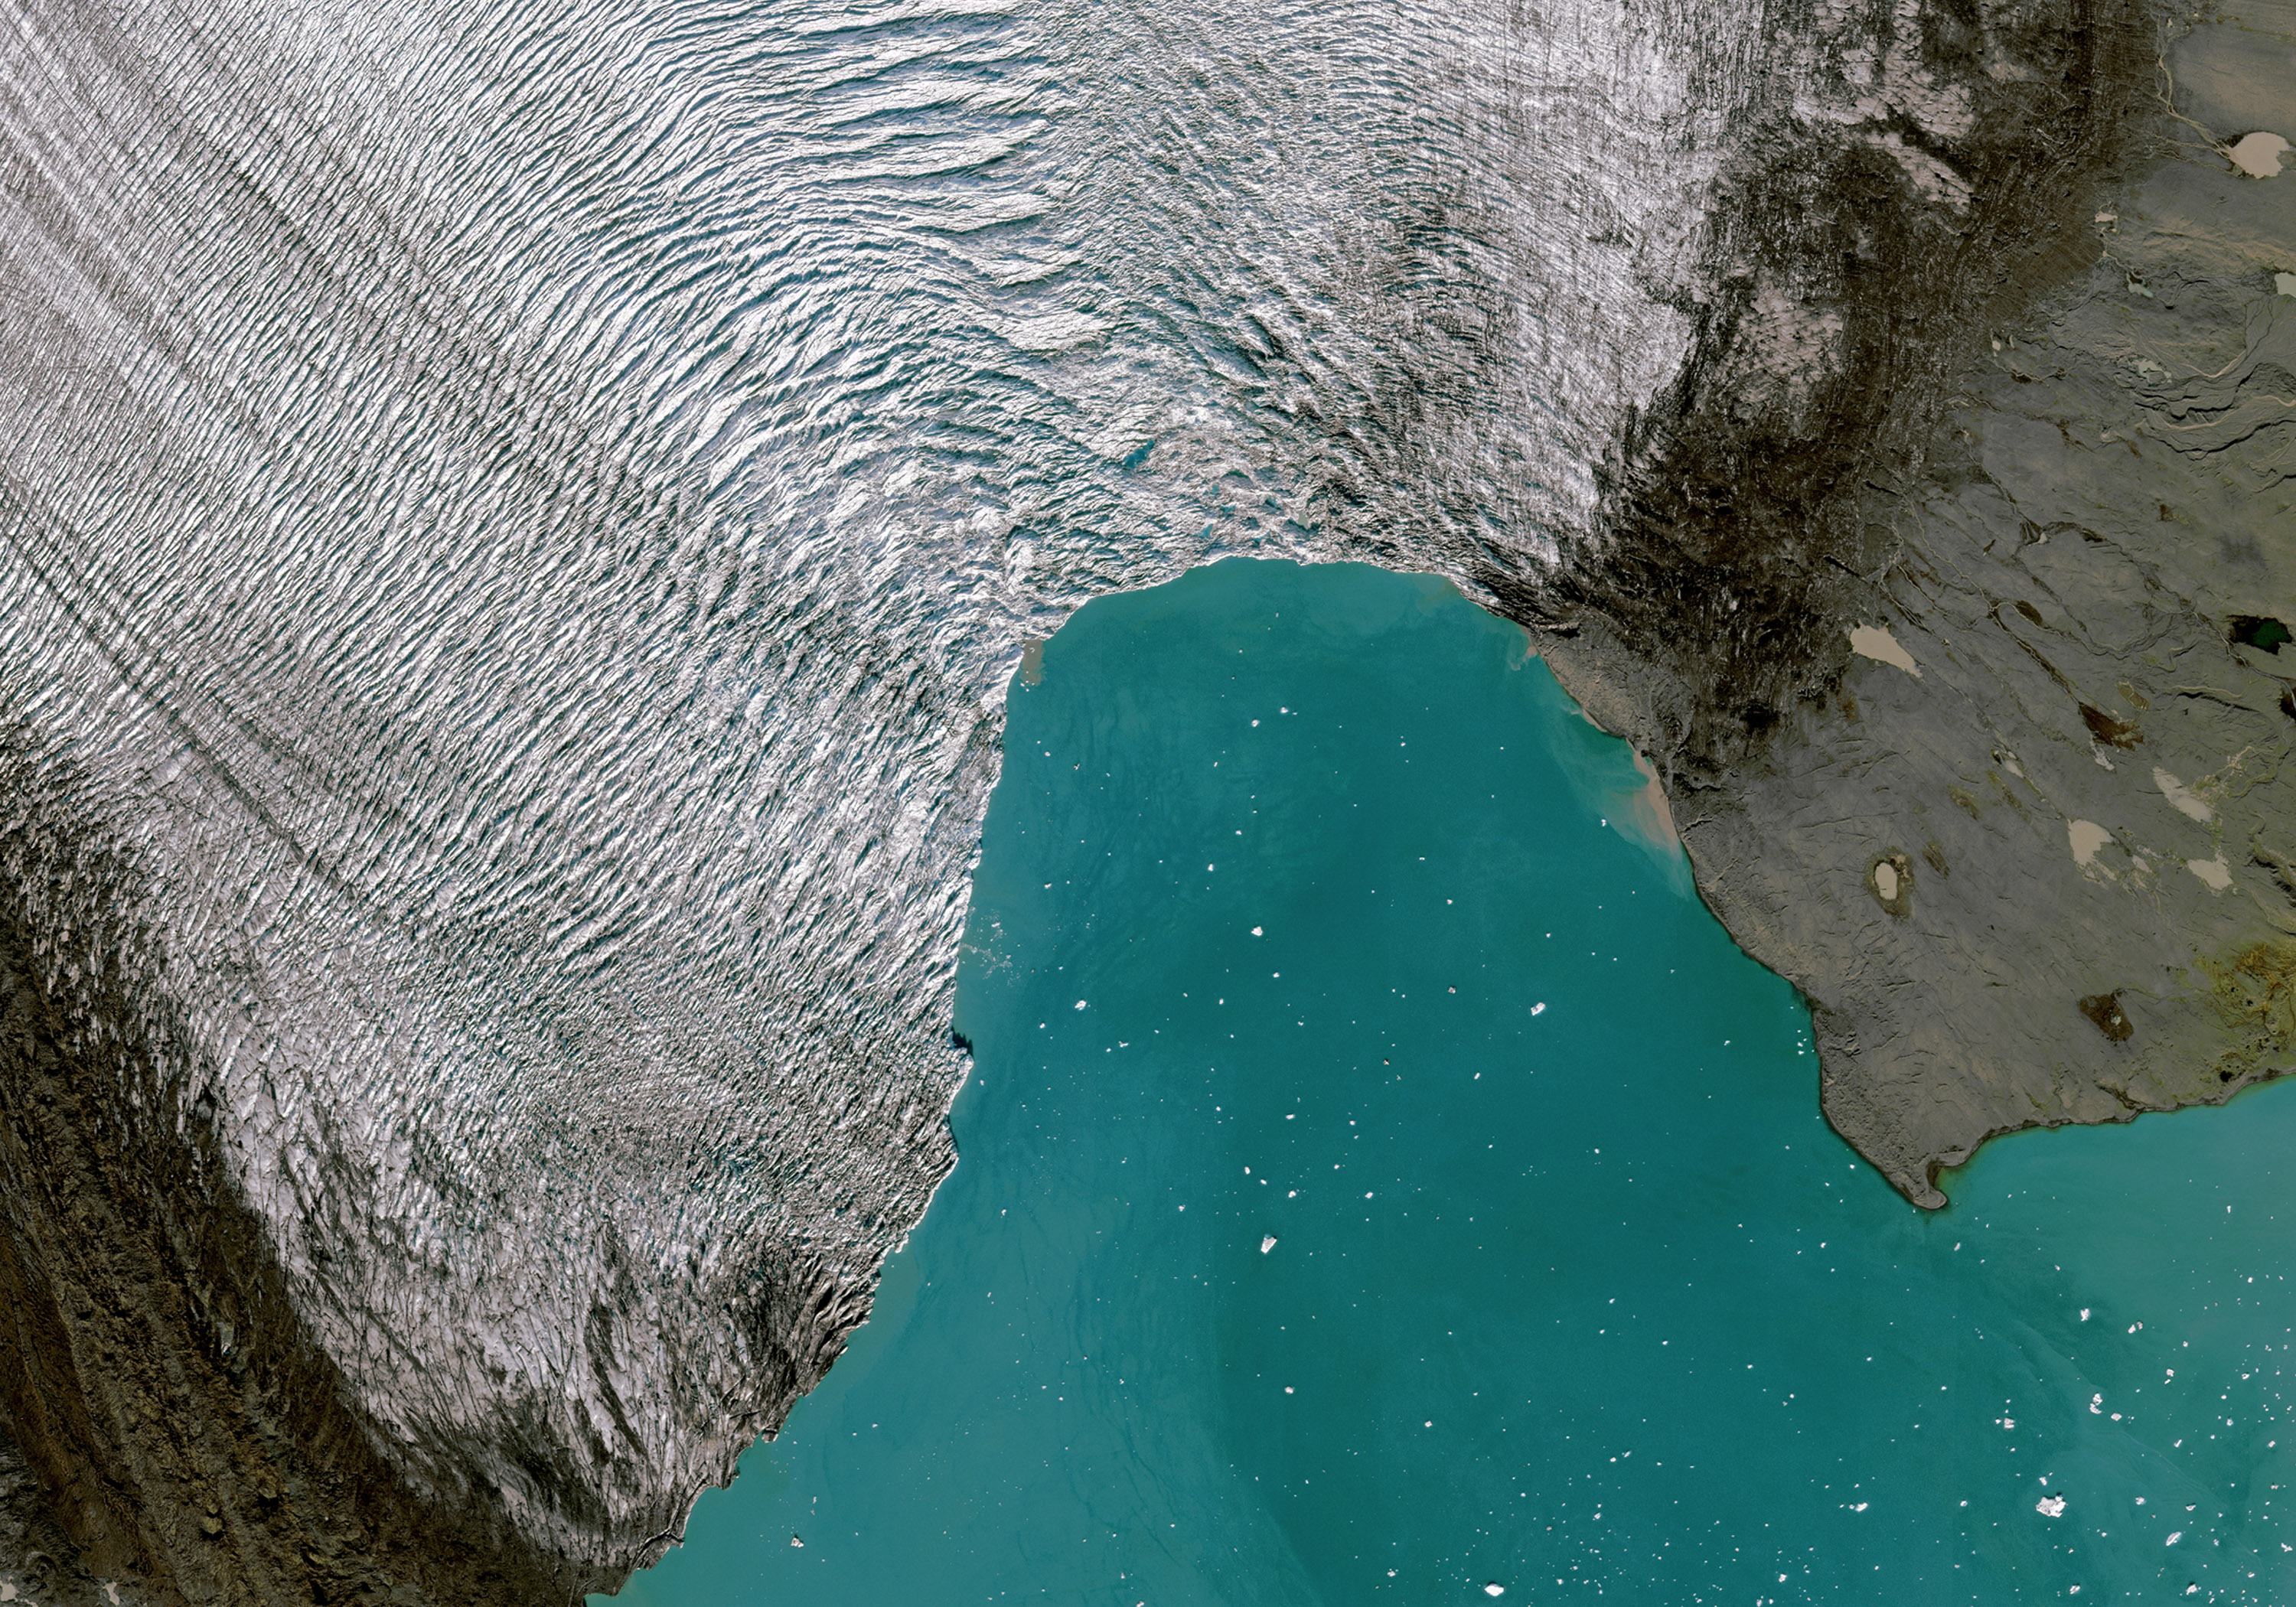 Junction between rough white and gray ice and bright teal water.